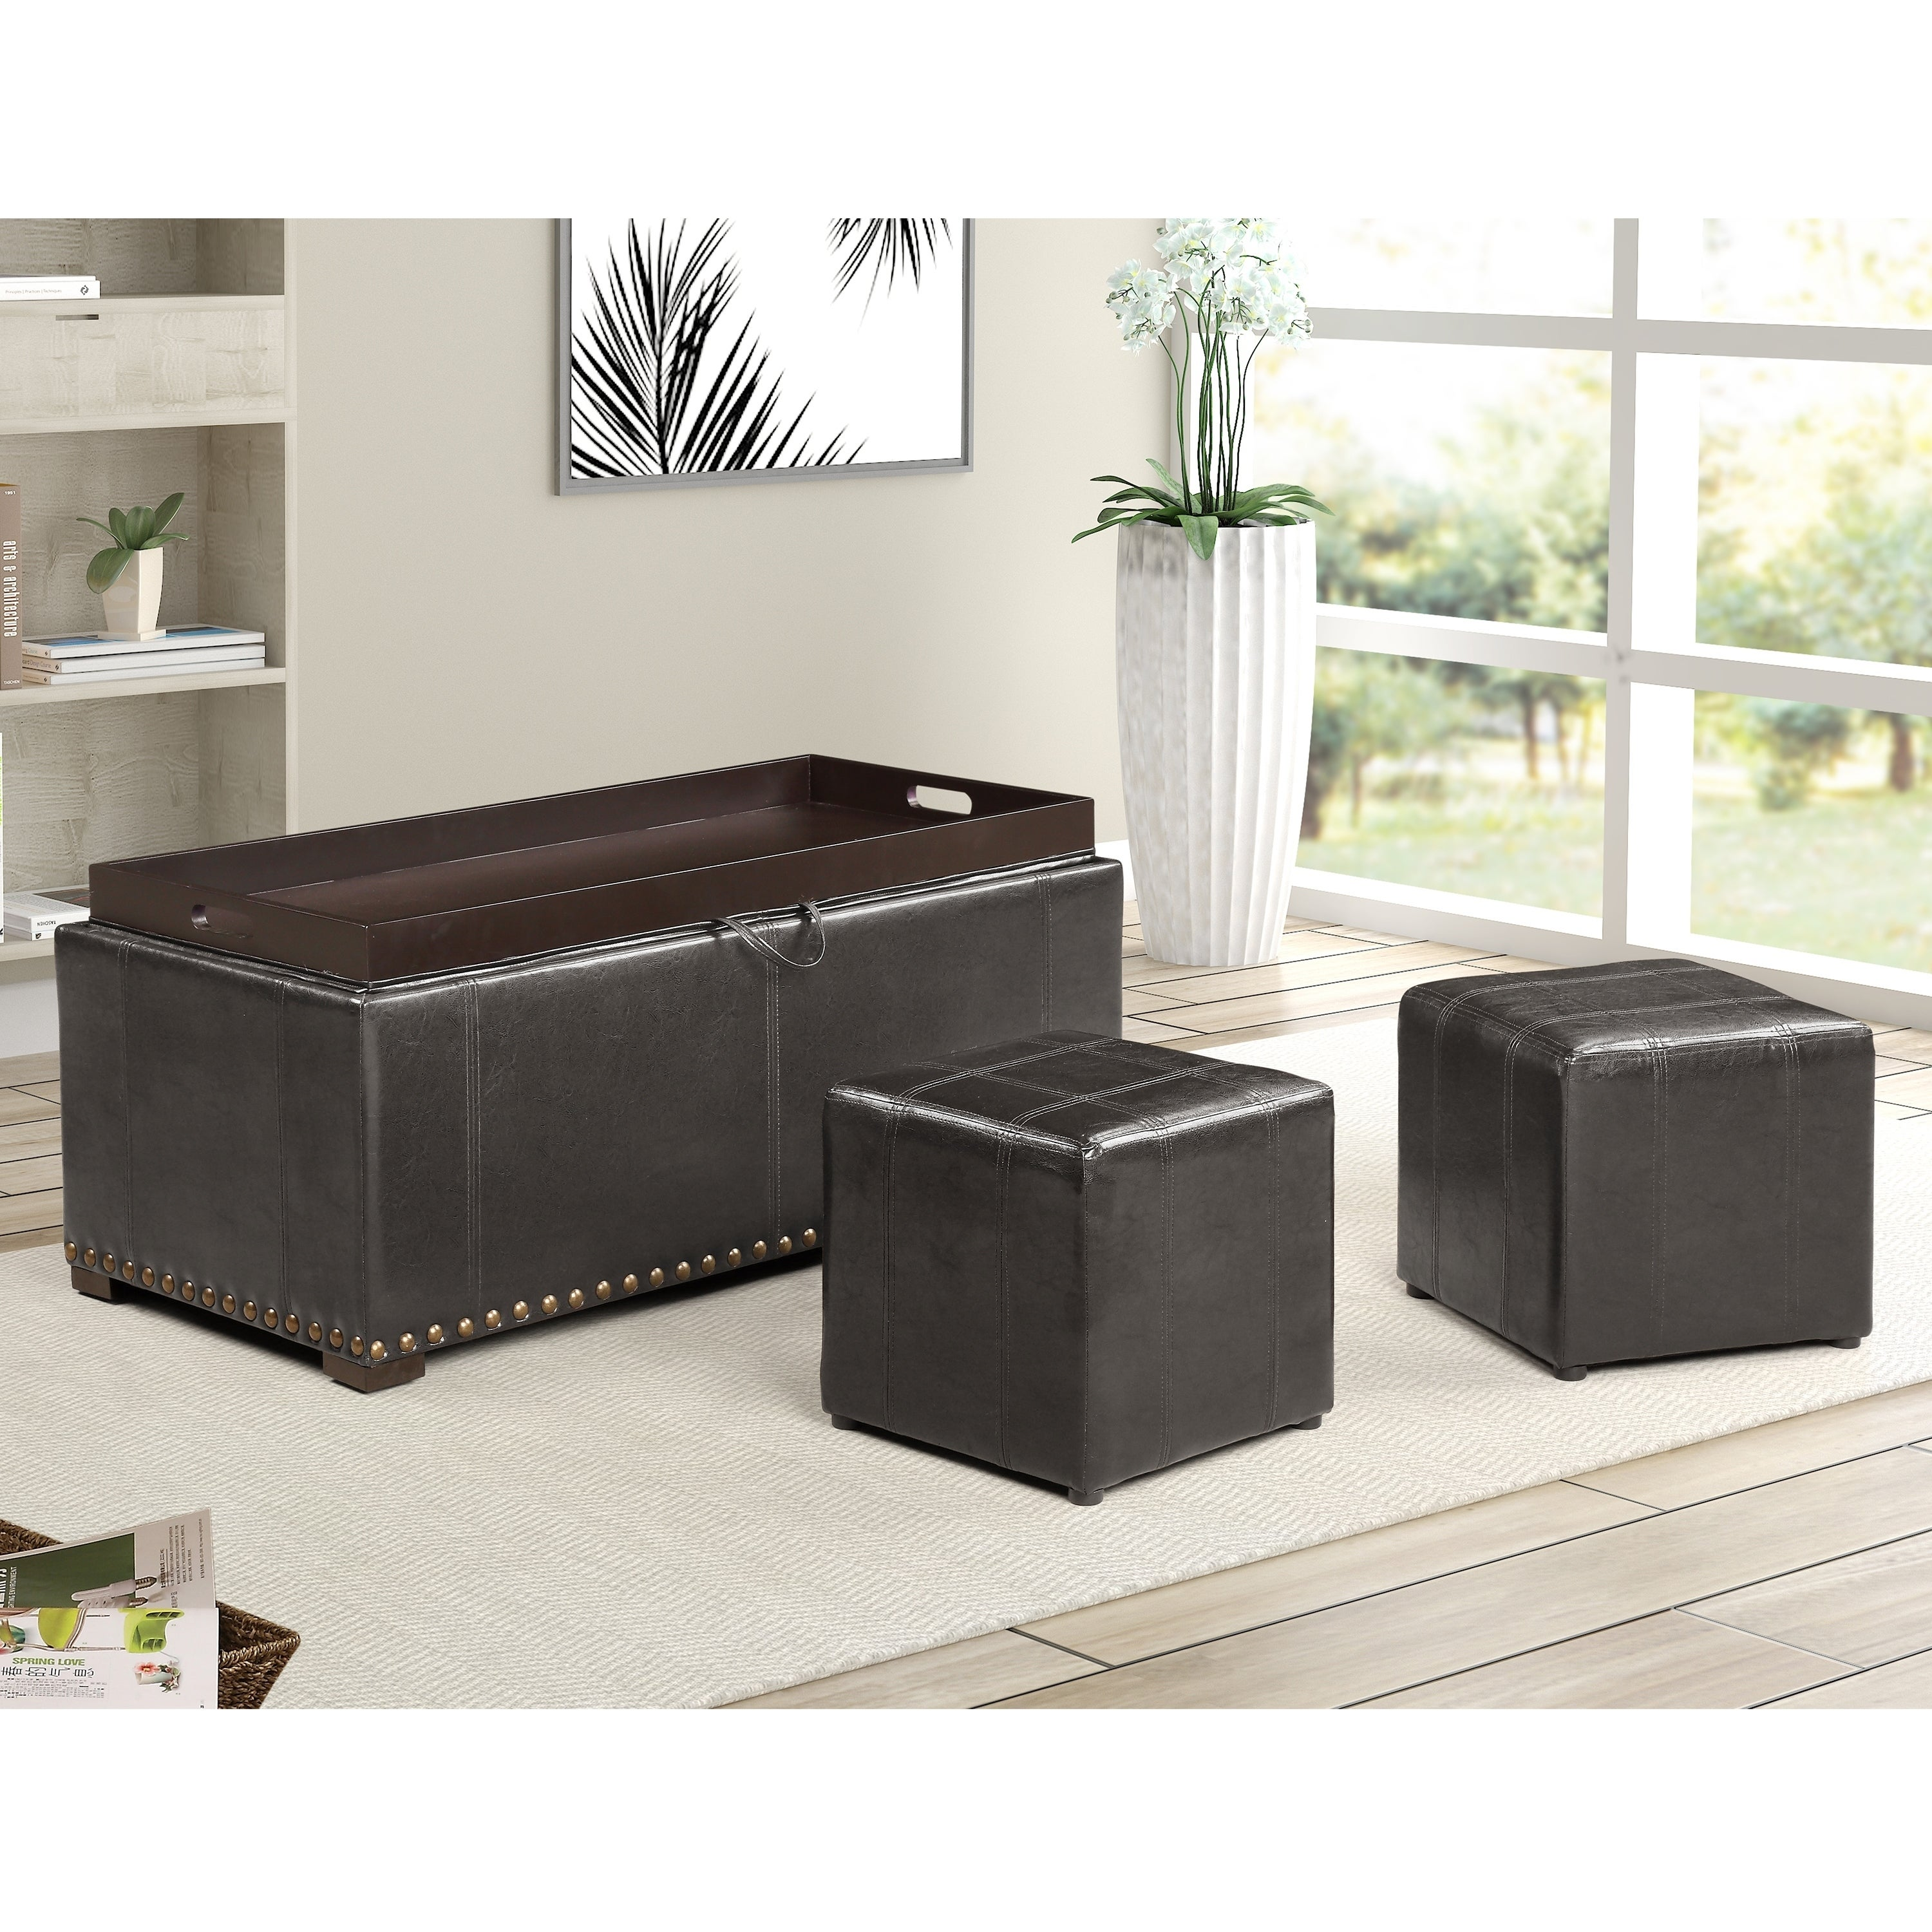 Magnificent Folding Storage Ottoman With Seat Back Footstool Space Theyellowbook Wood Chair Design Ideas Theyellowbookinfo